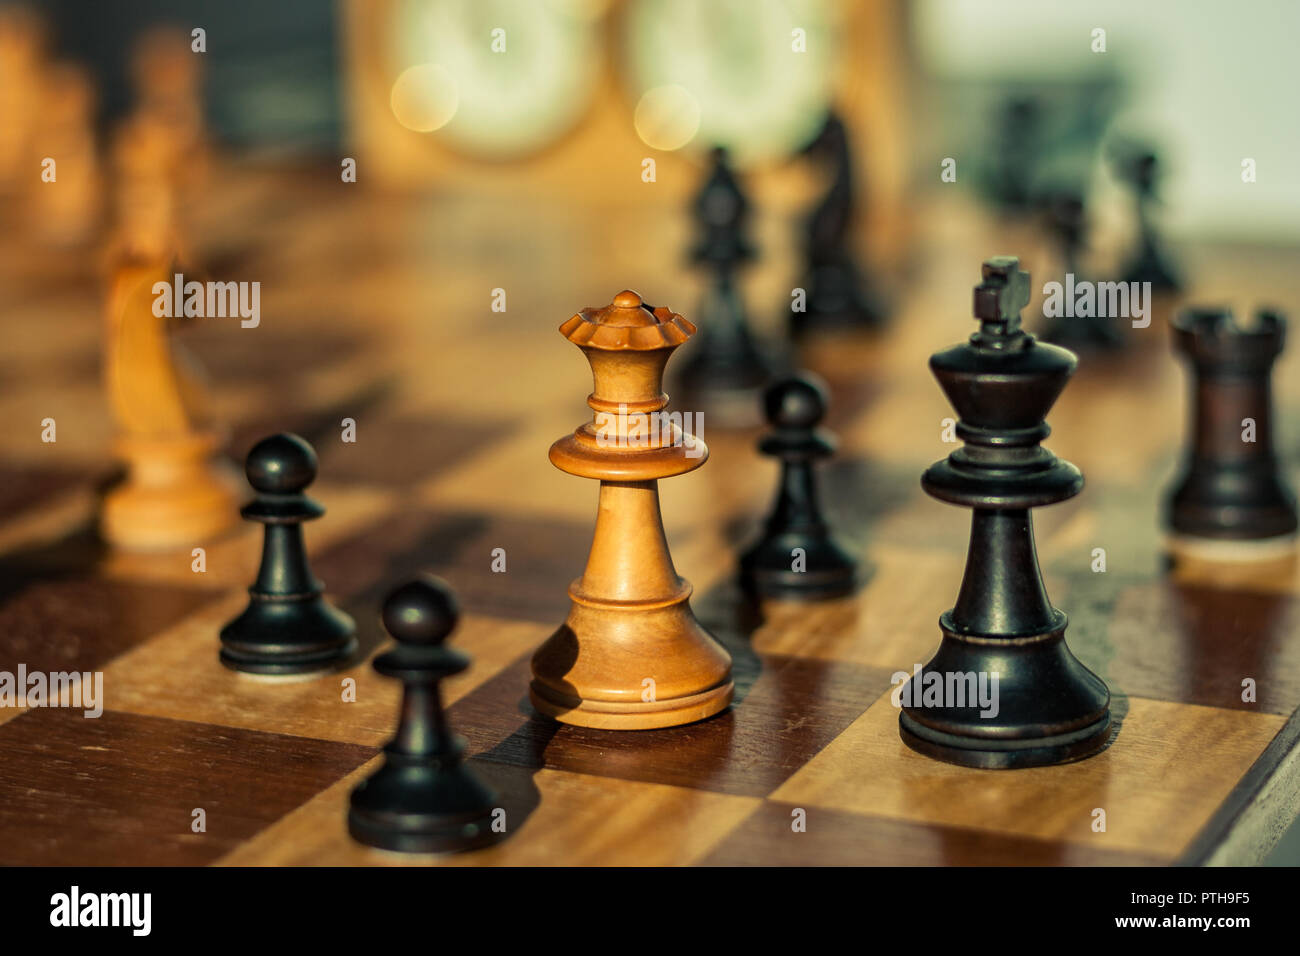 The White Queen gives Checkmate in a Game of Chess - Stock Image